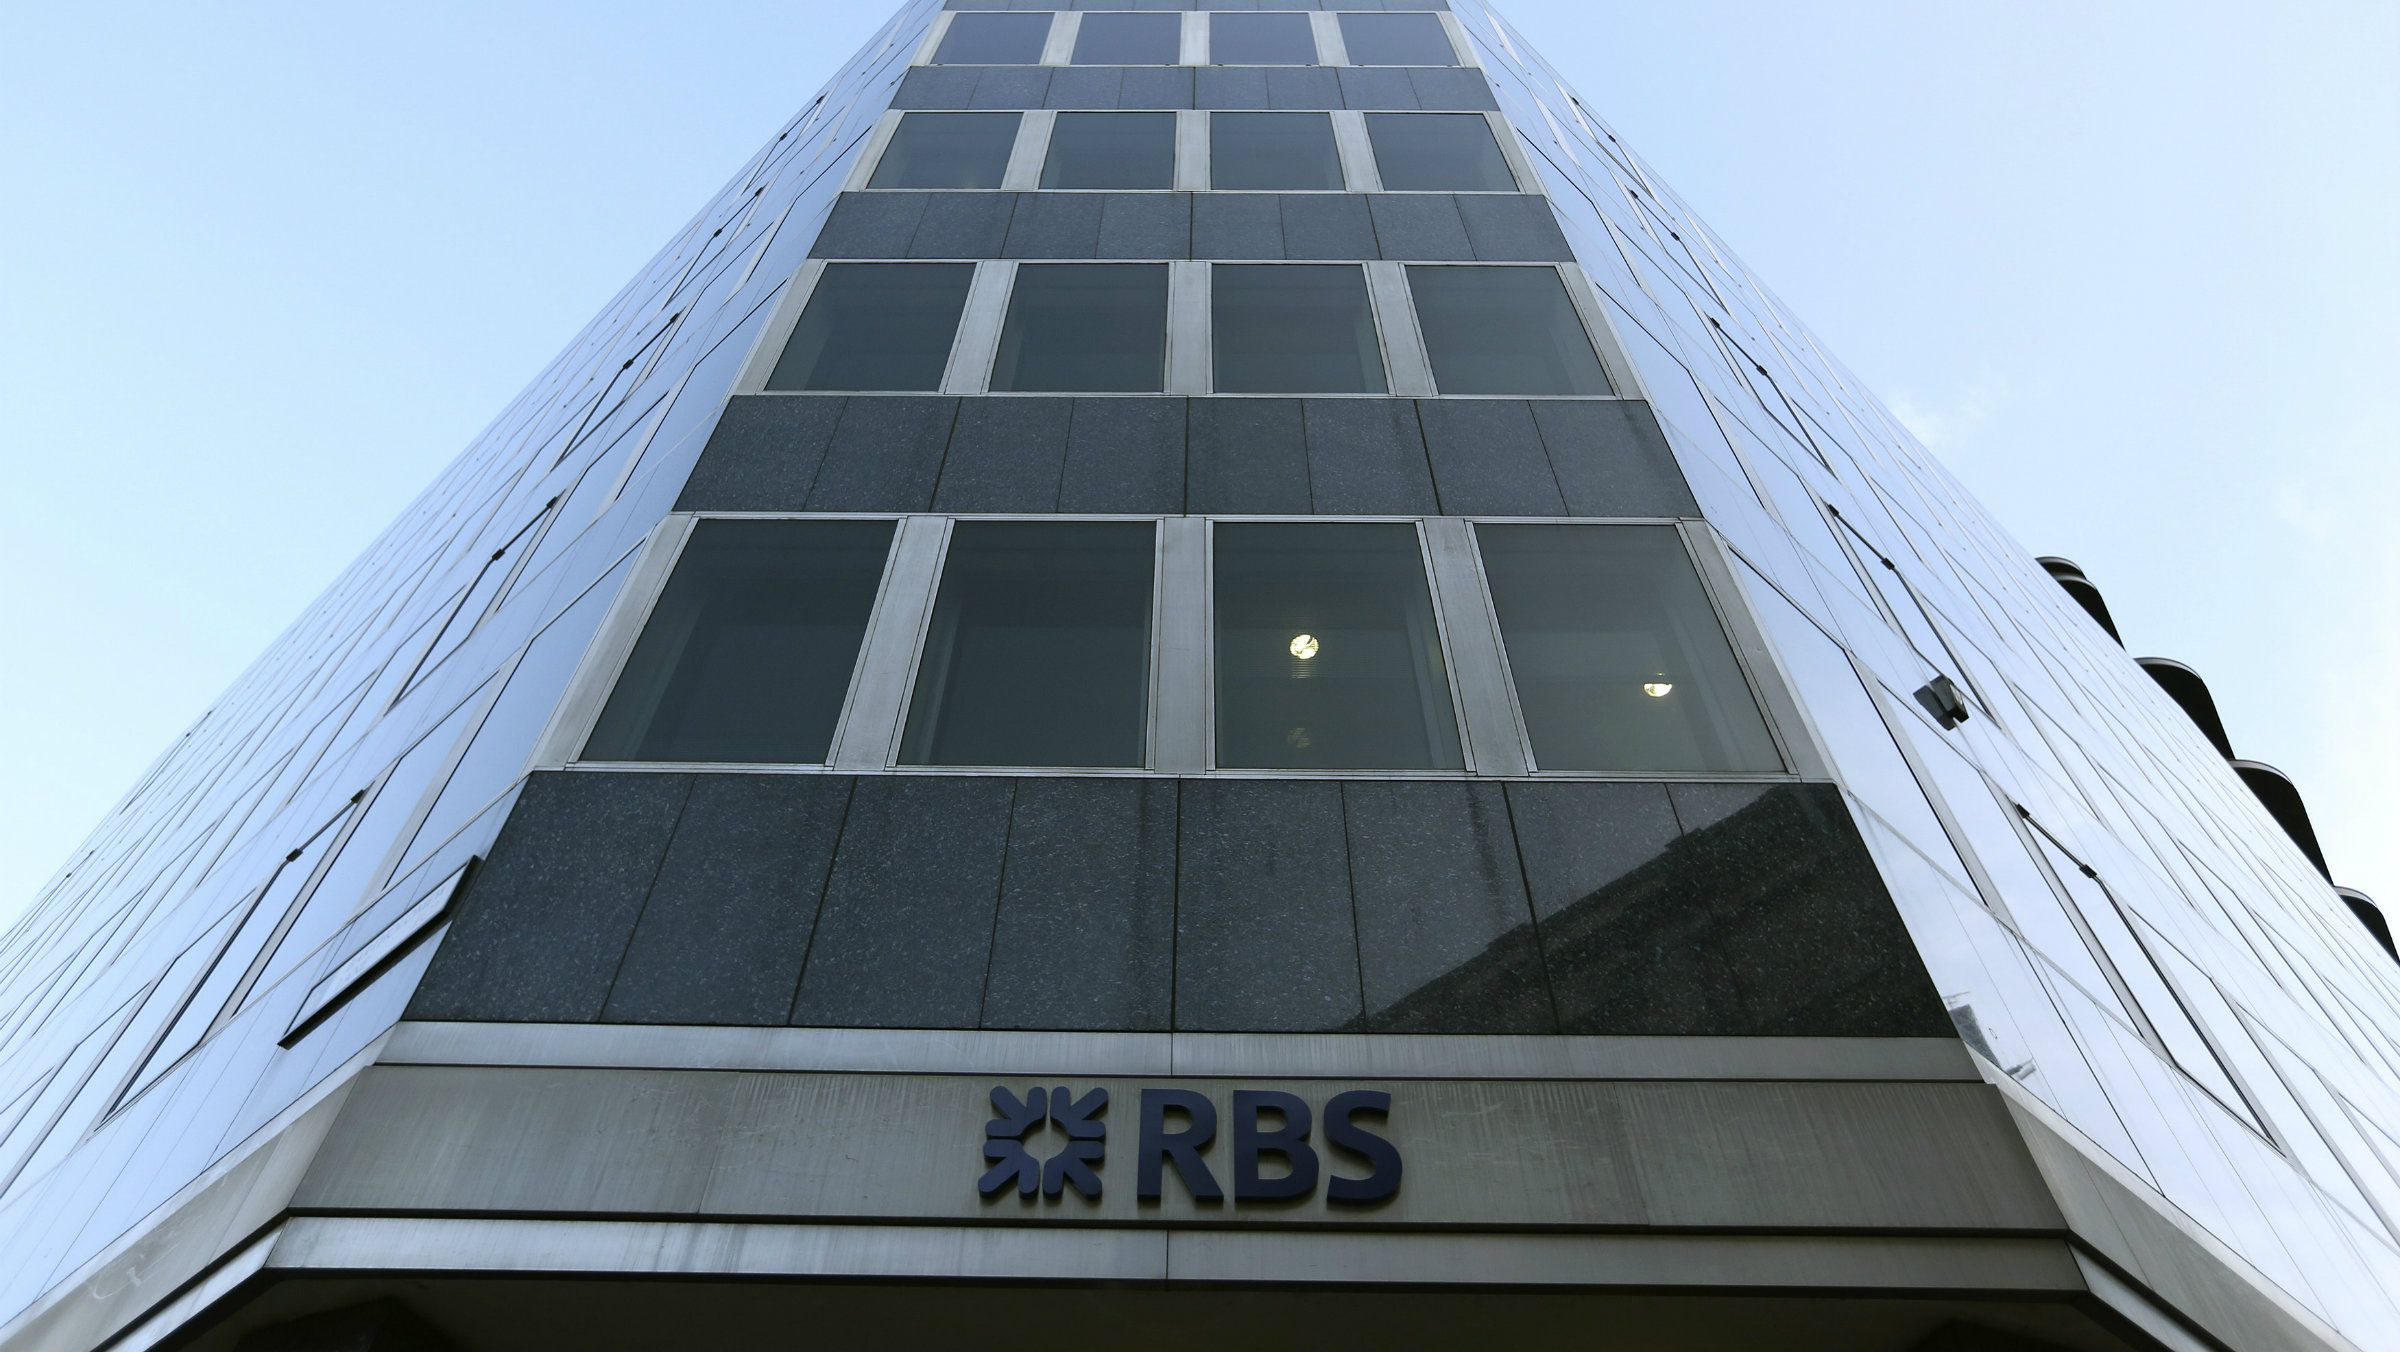 A sign is seen outside a Royal Bank of Scotland building in central London.